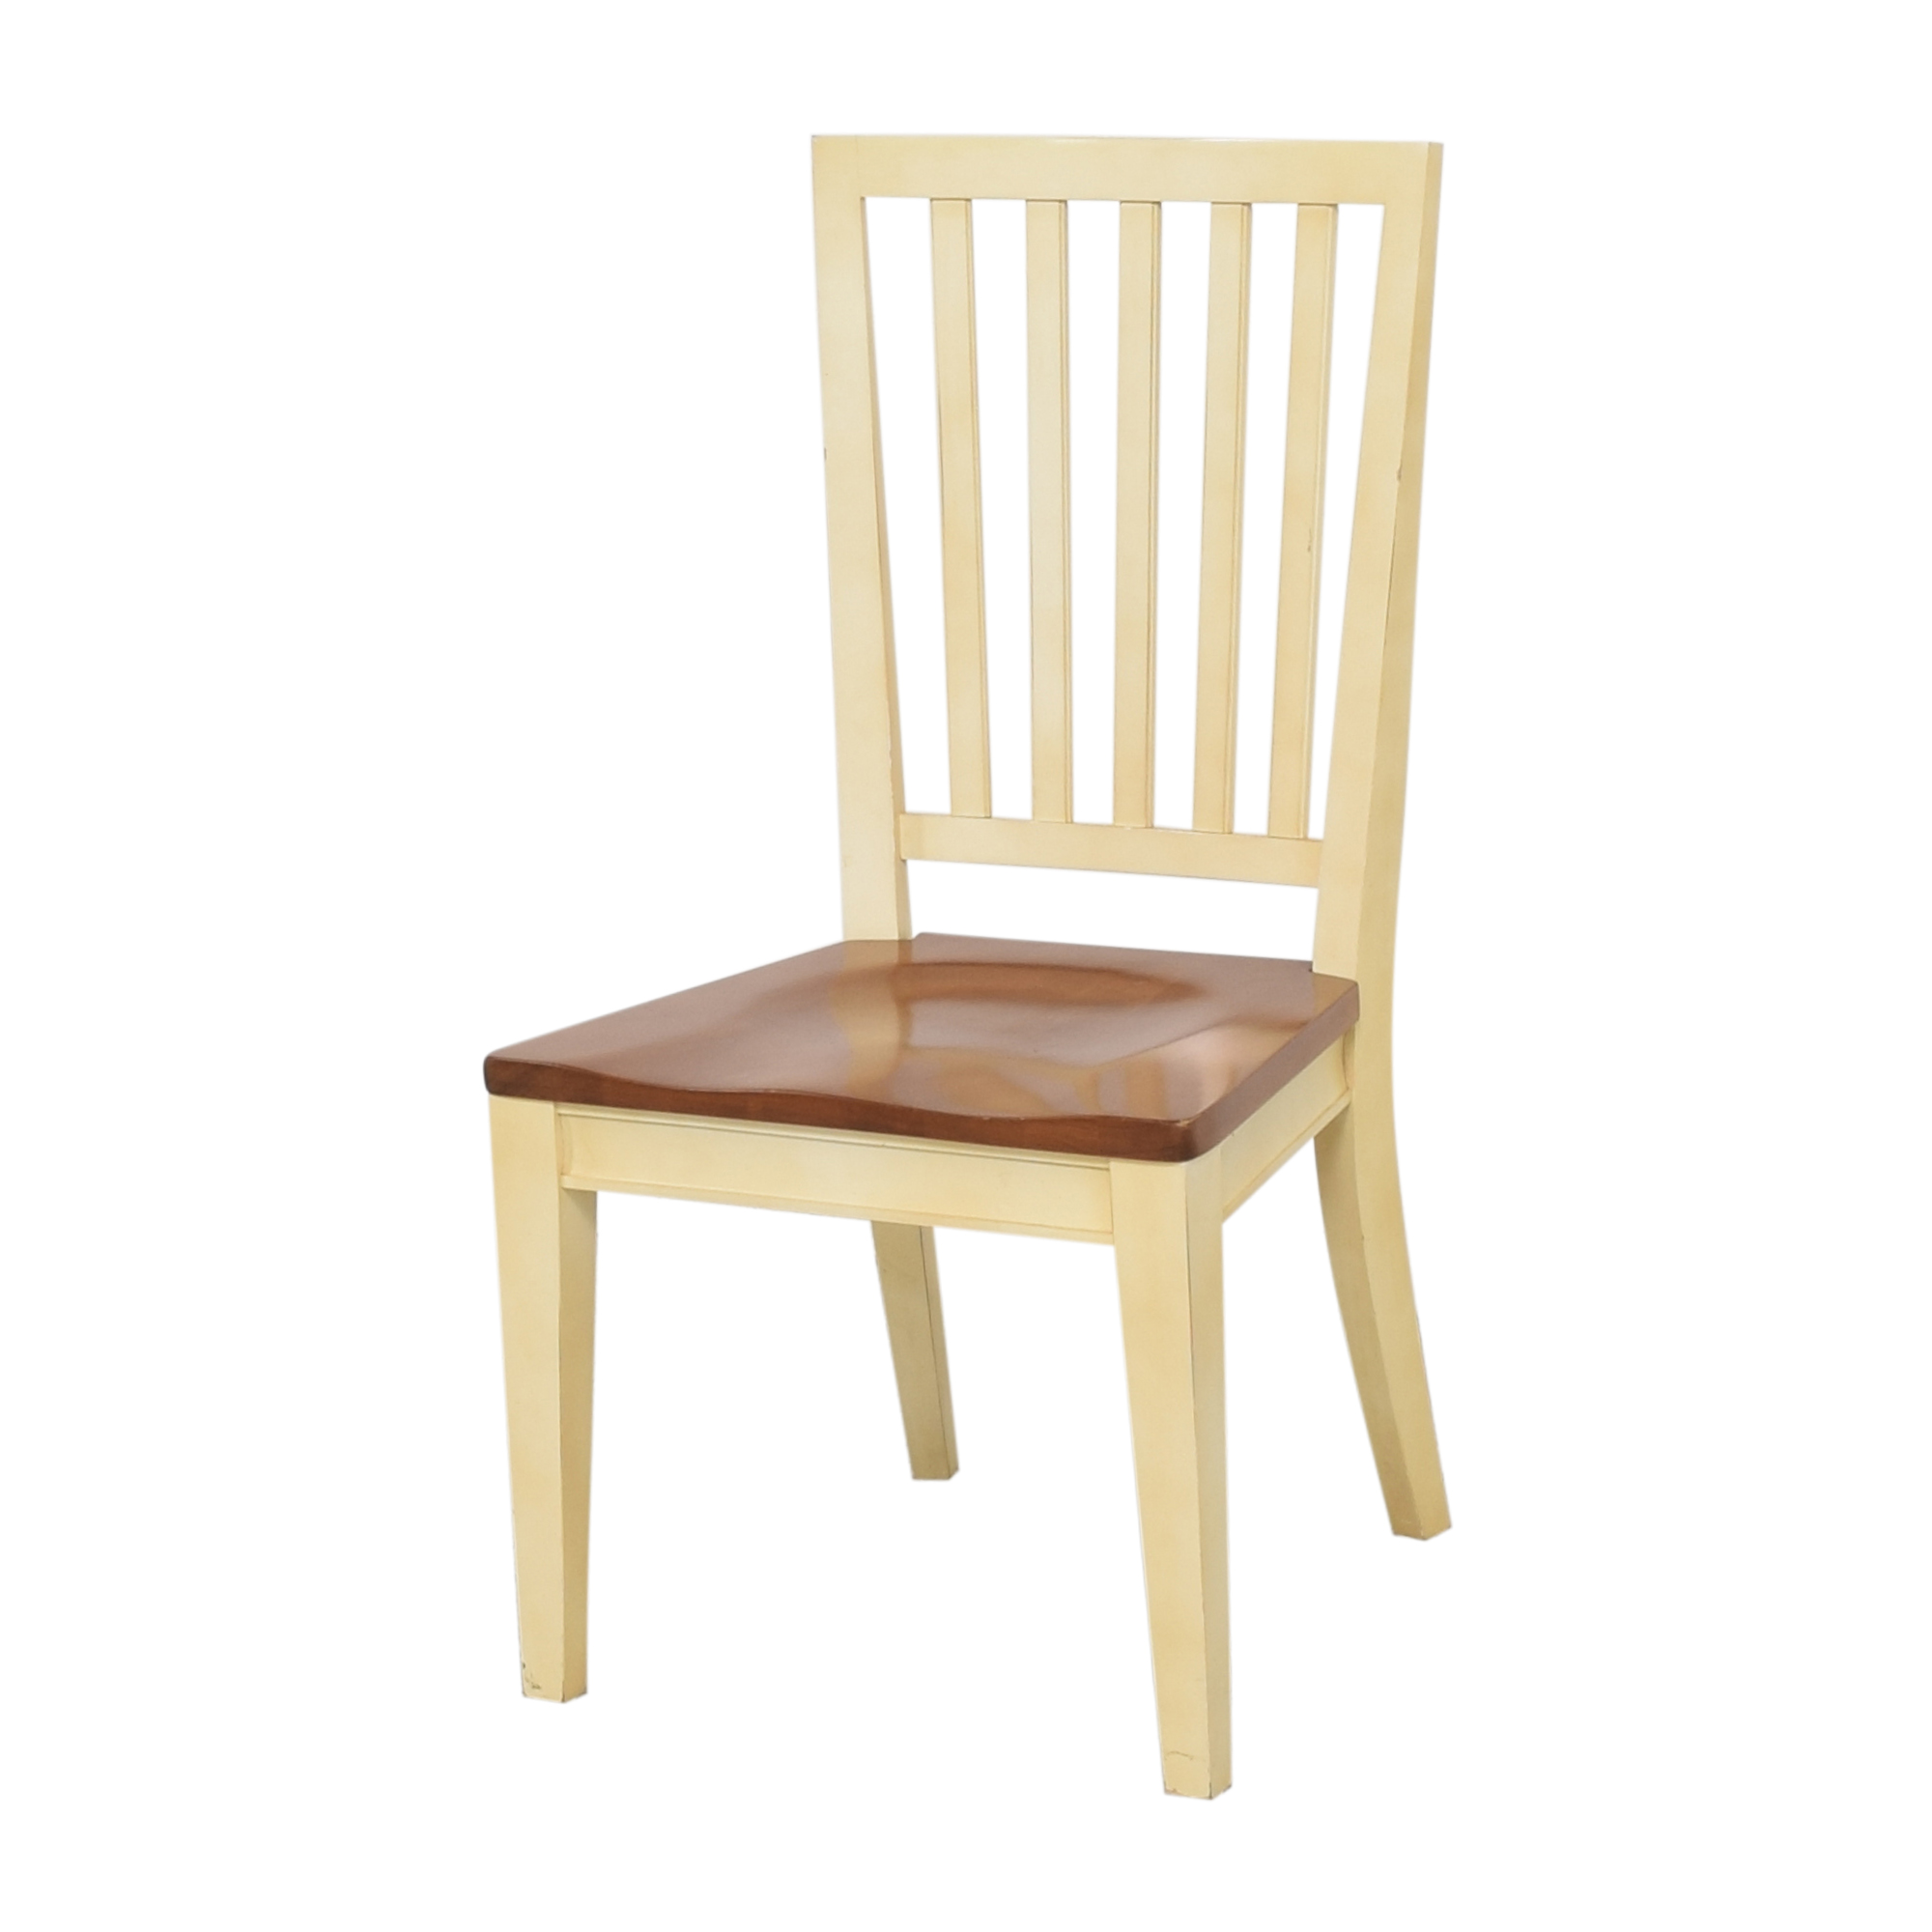 Ethan Allen Ethan Allen Dining Chairs on sale